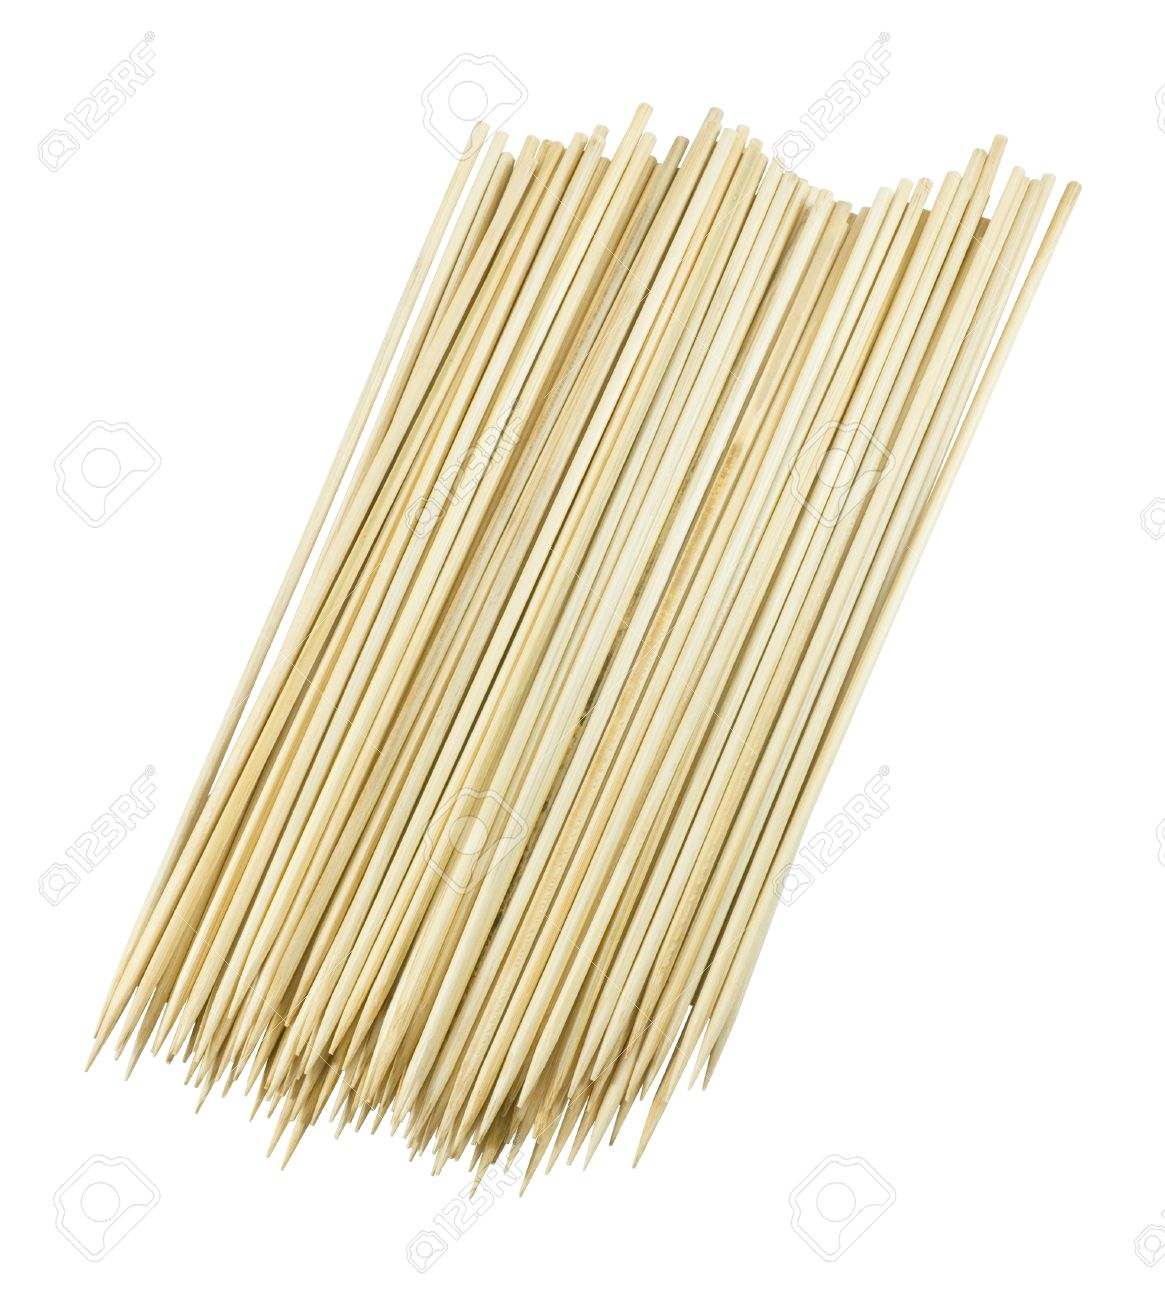 Kitchen Utensils Pile Of Wooden Sticks Or Wooden Skewers Used